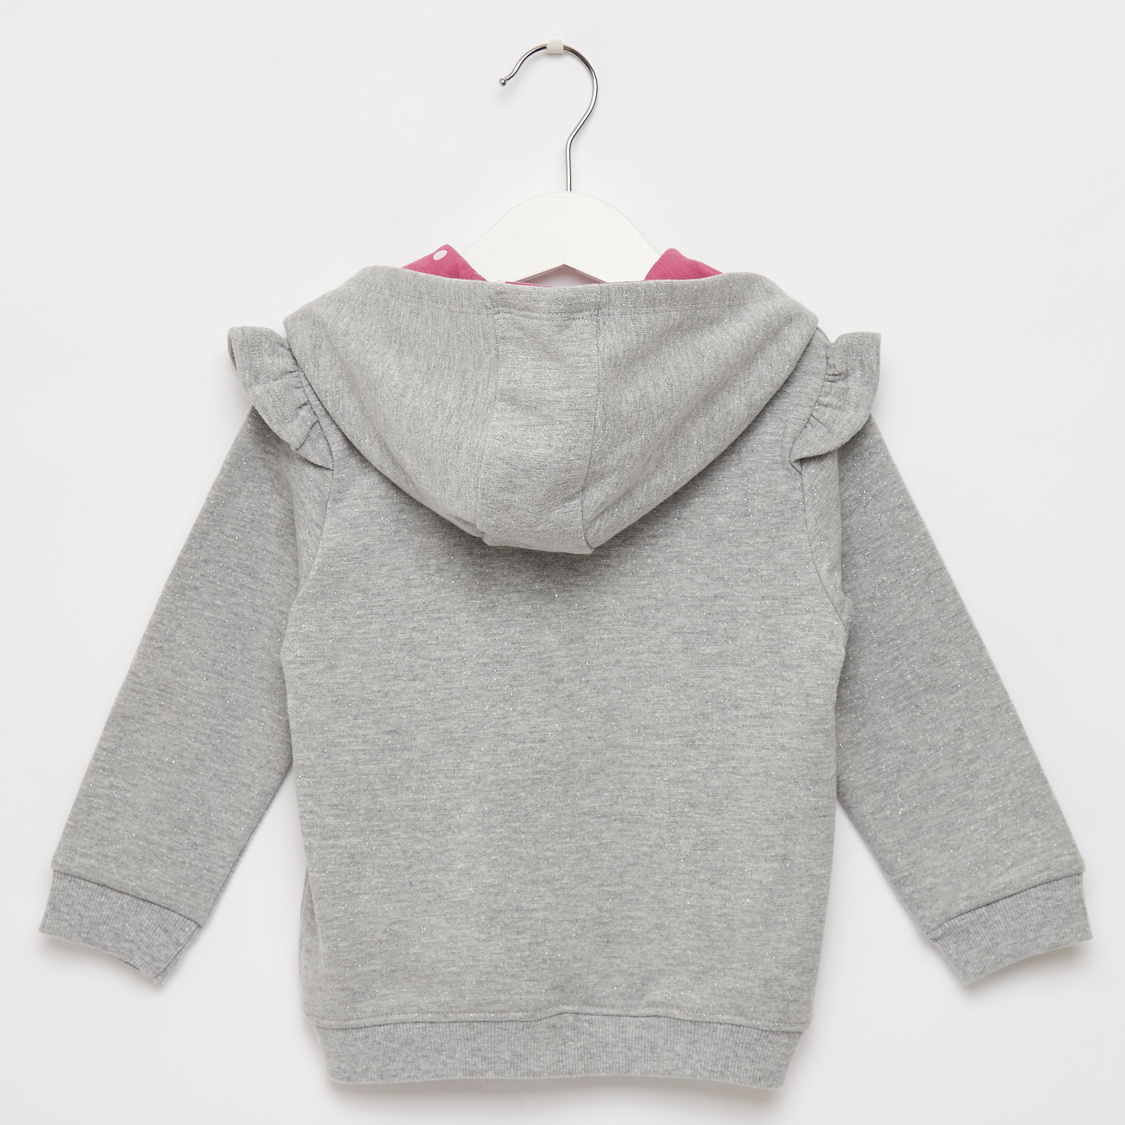 Hooded Long Sleeves Jacket with Heart Applique and Frill Detail